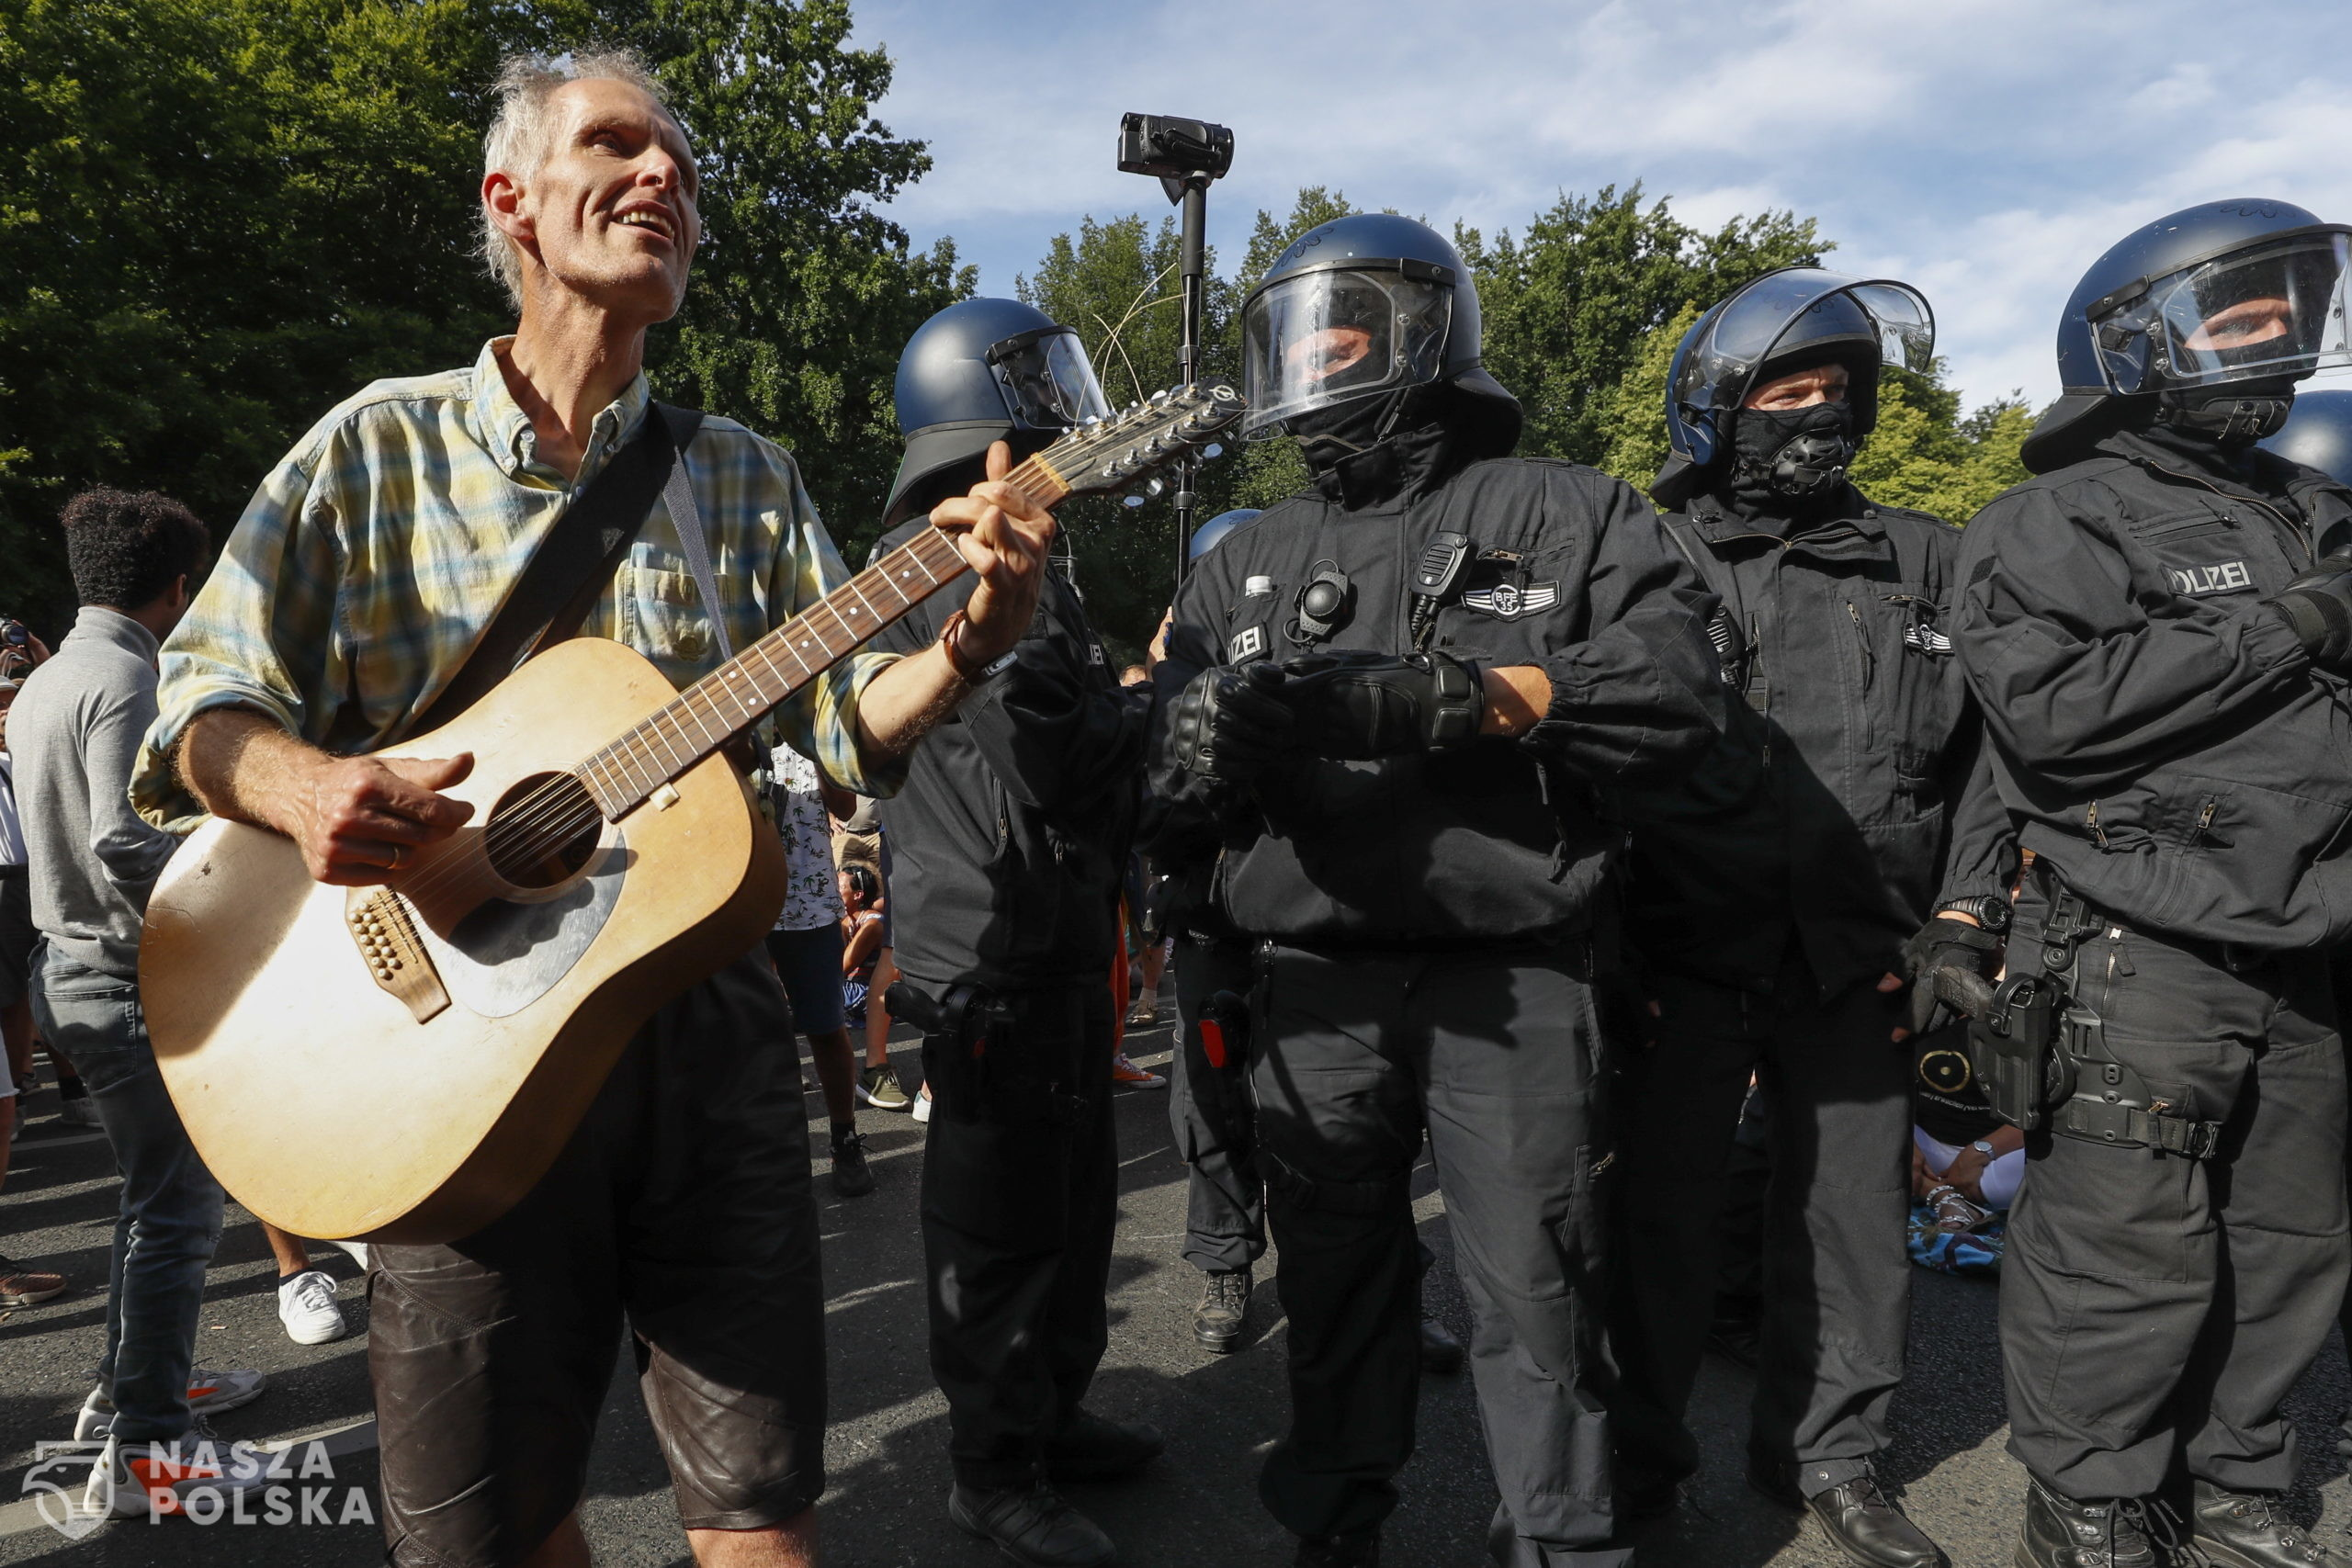 epa08579074 A demonstrator plays on a guitar in front of policemen during a protest against coronavirus pandemic regulations in Berlin, Germany, 01 August 2020. An alliance of right wing groups have called to a democratic resistance demonstration for the first weekend in August. The nationwide rally 'Day of Freedom' will take place 01 August as a protest against the measures imposed by the Government in relation to the coronavirus pandemic. The events are organized by groups of various motives, right wing activists, conspiracy theory believers and more.  EPA/FELIPE TRUEBA  Dostawca: PAP/EPA.